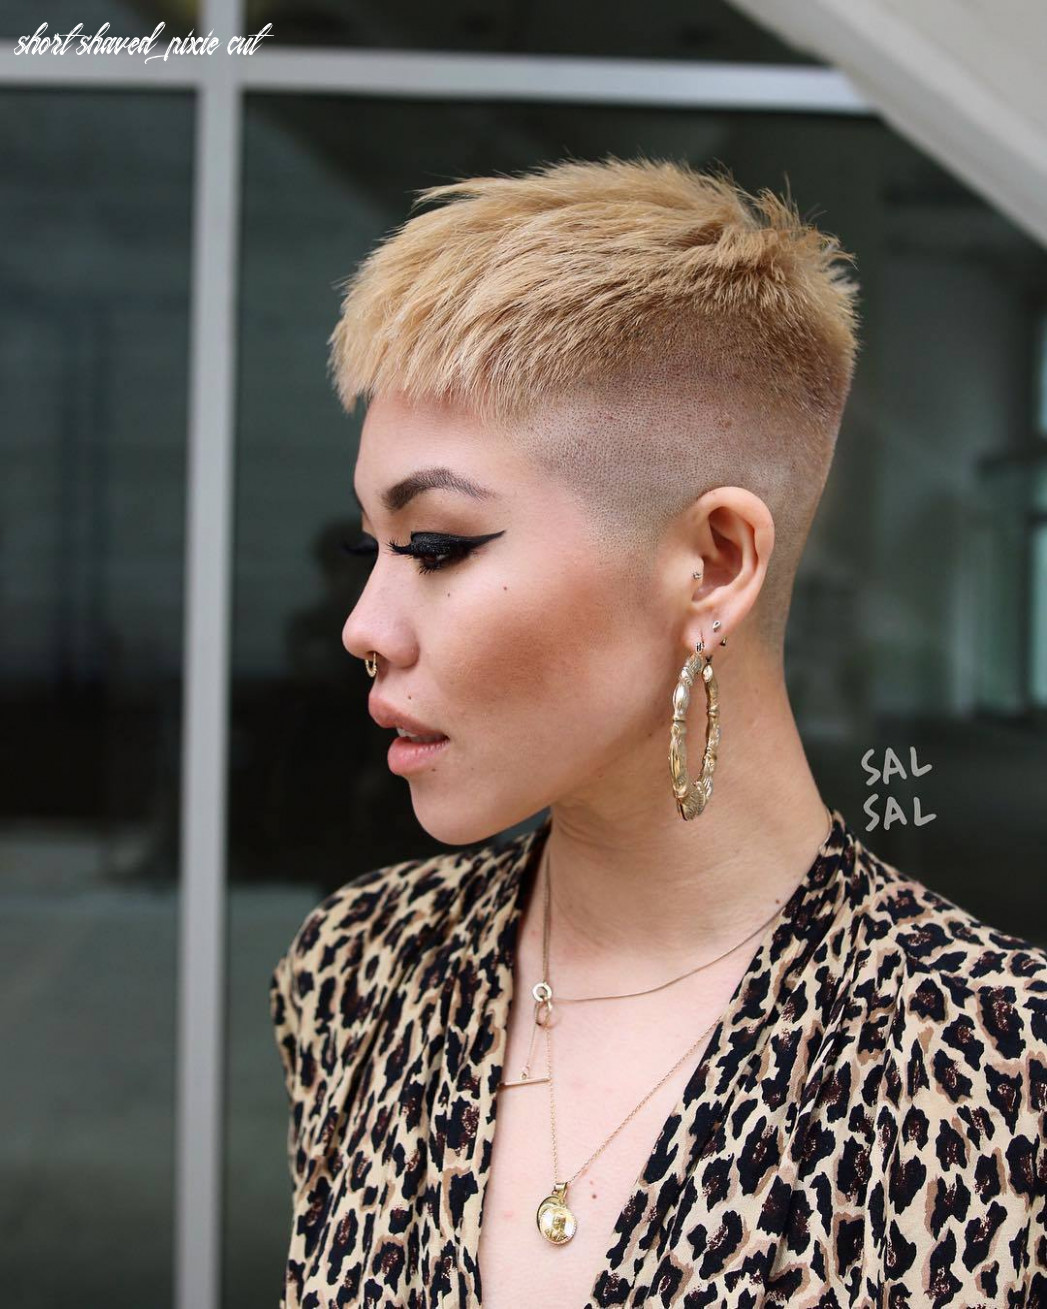 11 best pixie cut hairstyles for 11 you will want to see short shaved pixie cut